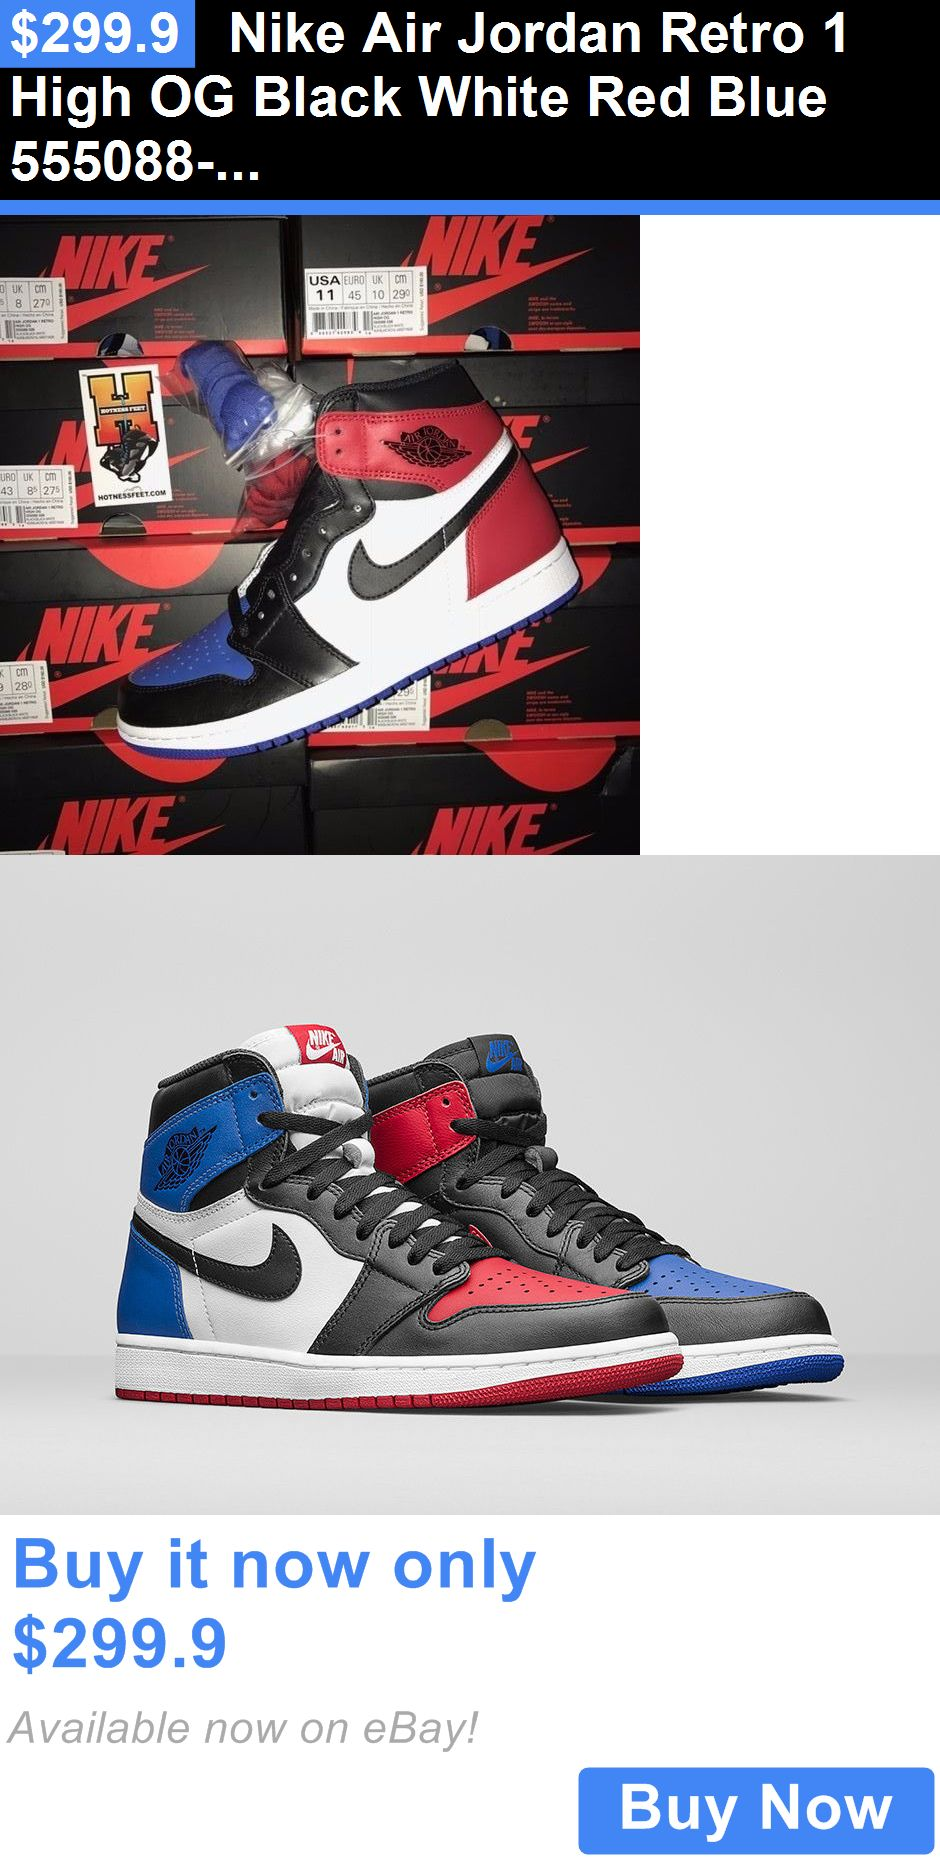 nike retro 1 red and blue